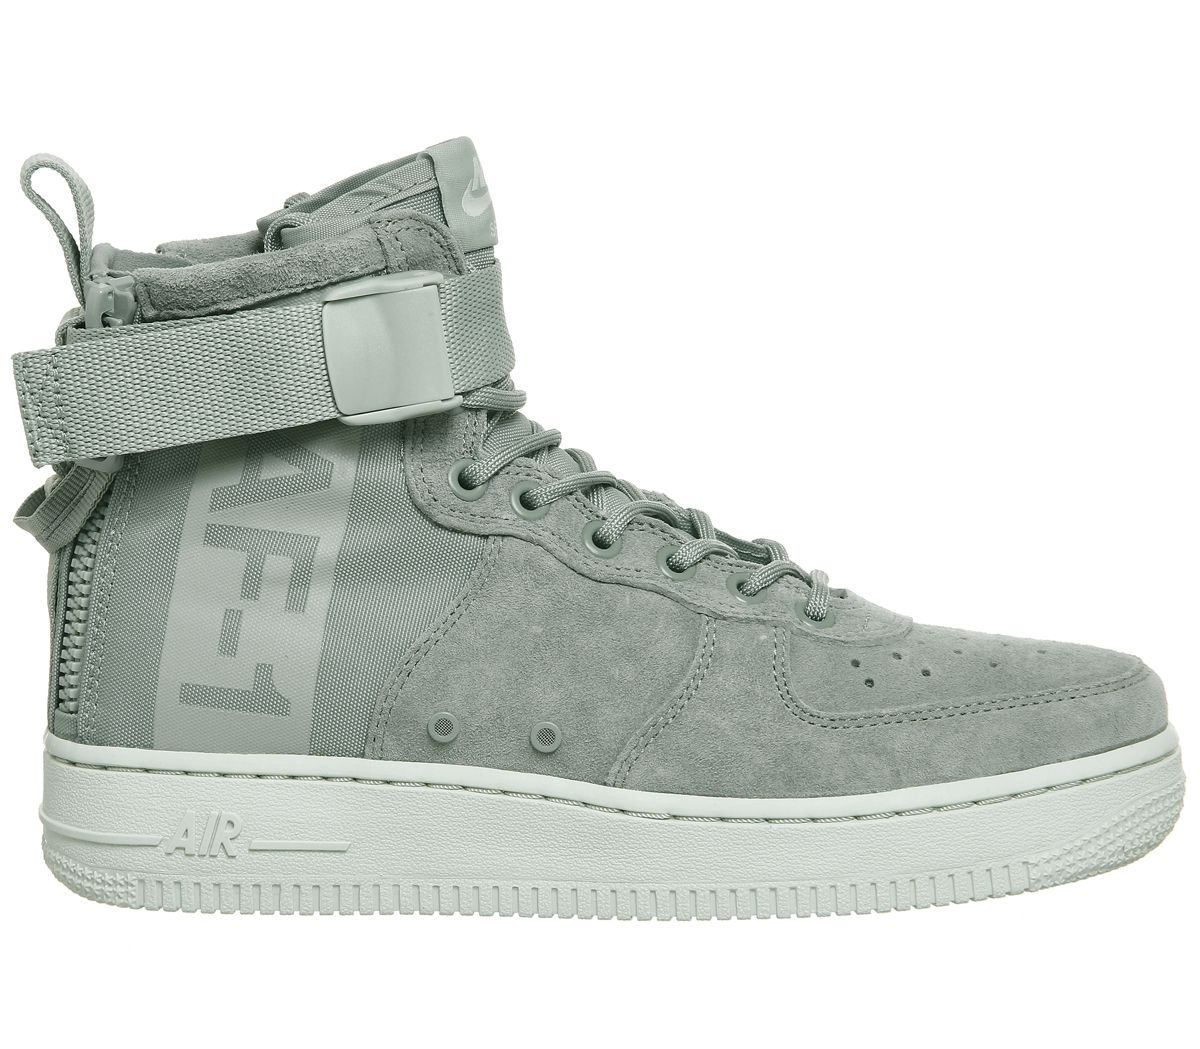 differently d6cec e365d Sf Af1 Mid '17 Trainers | sneaker head in 2019 | Sneakers ...